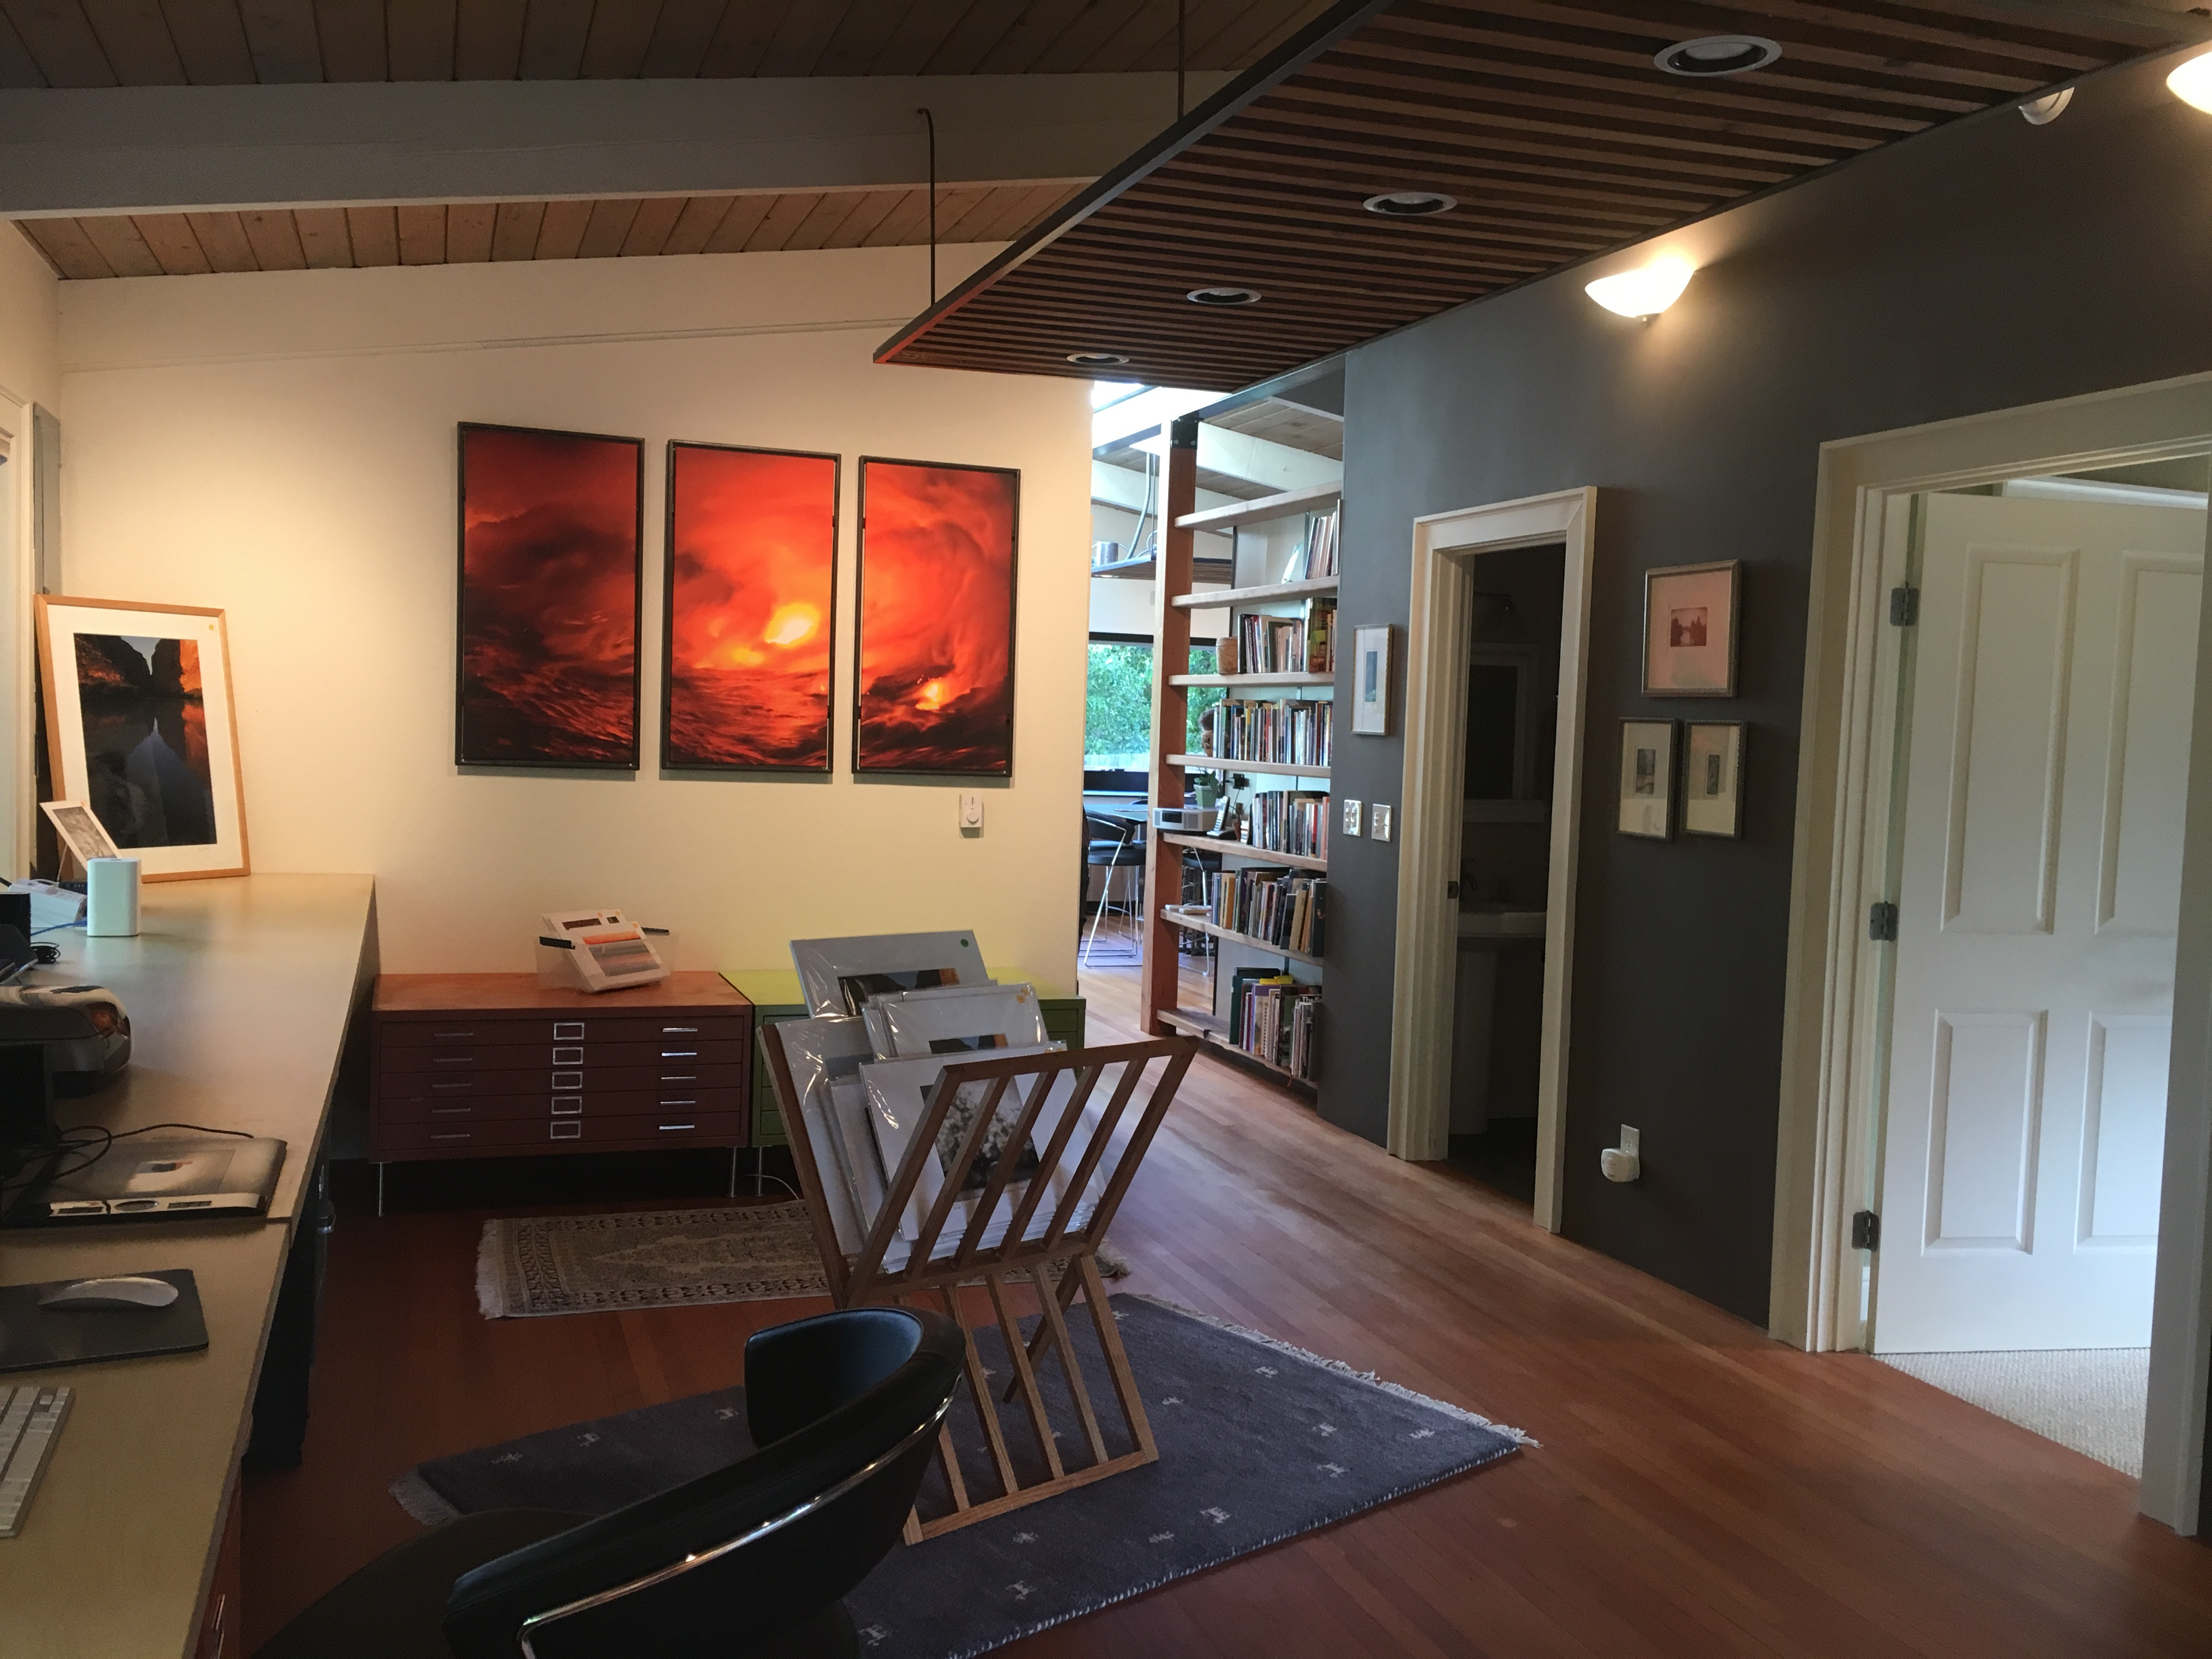 Bright art anchor the space and create flow through the room